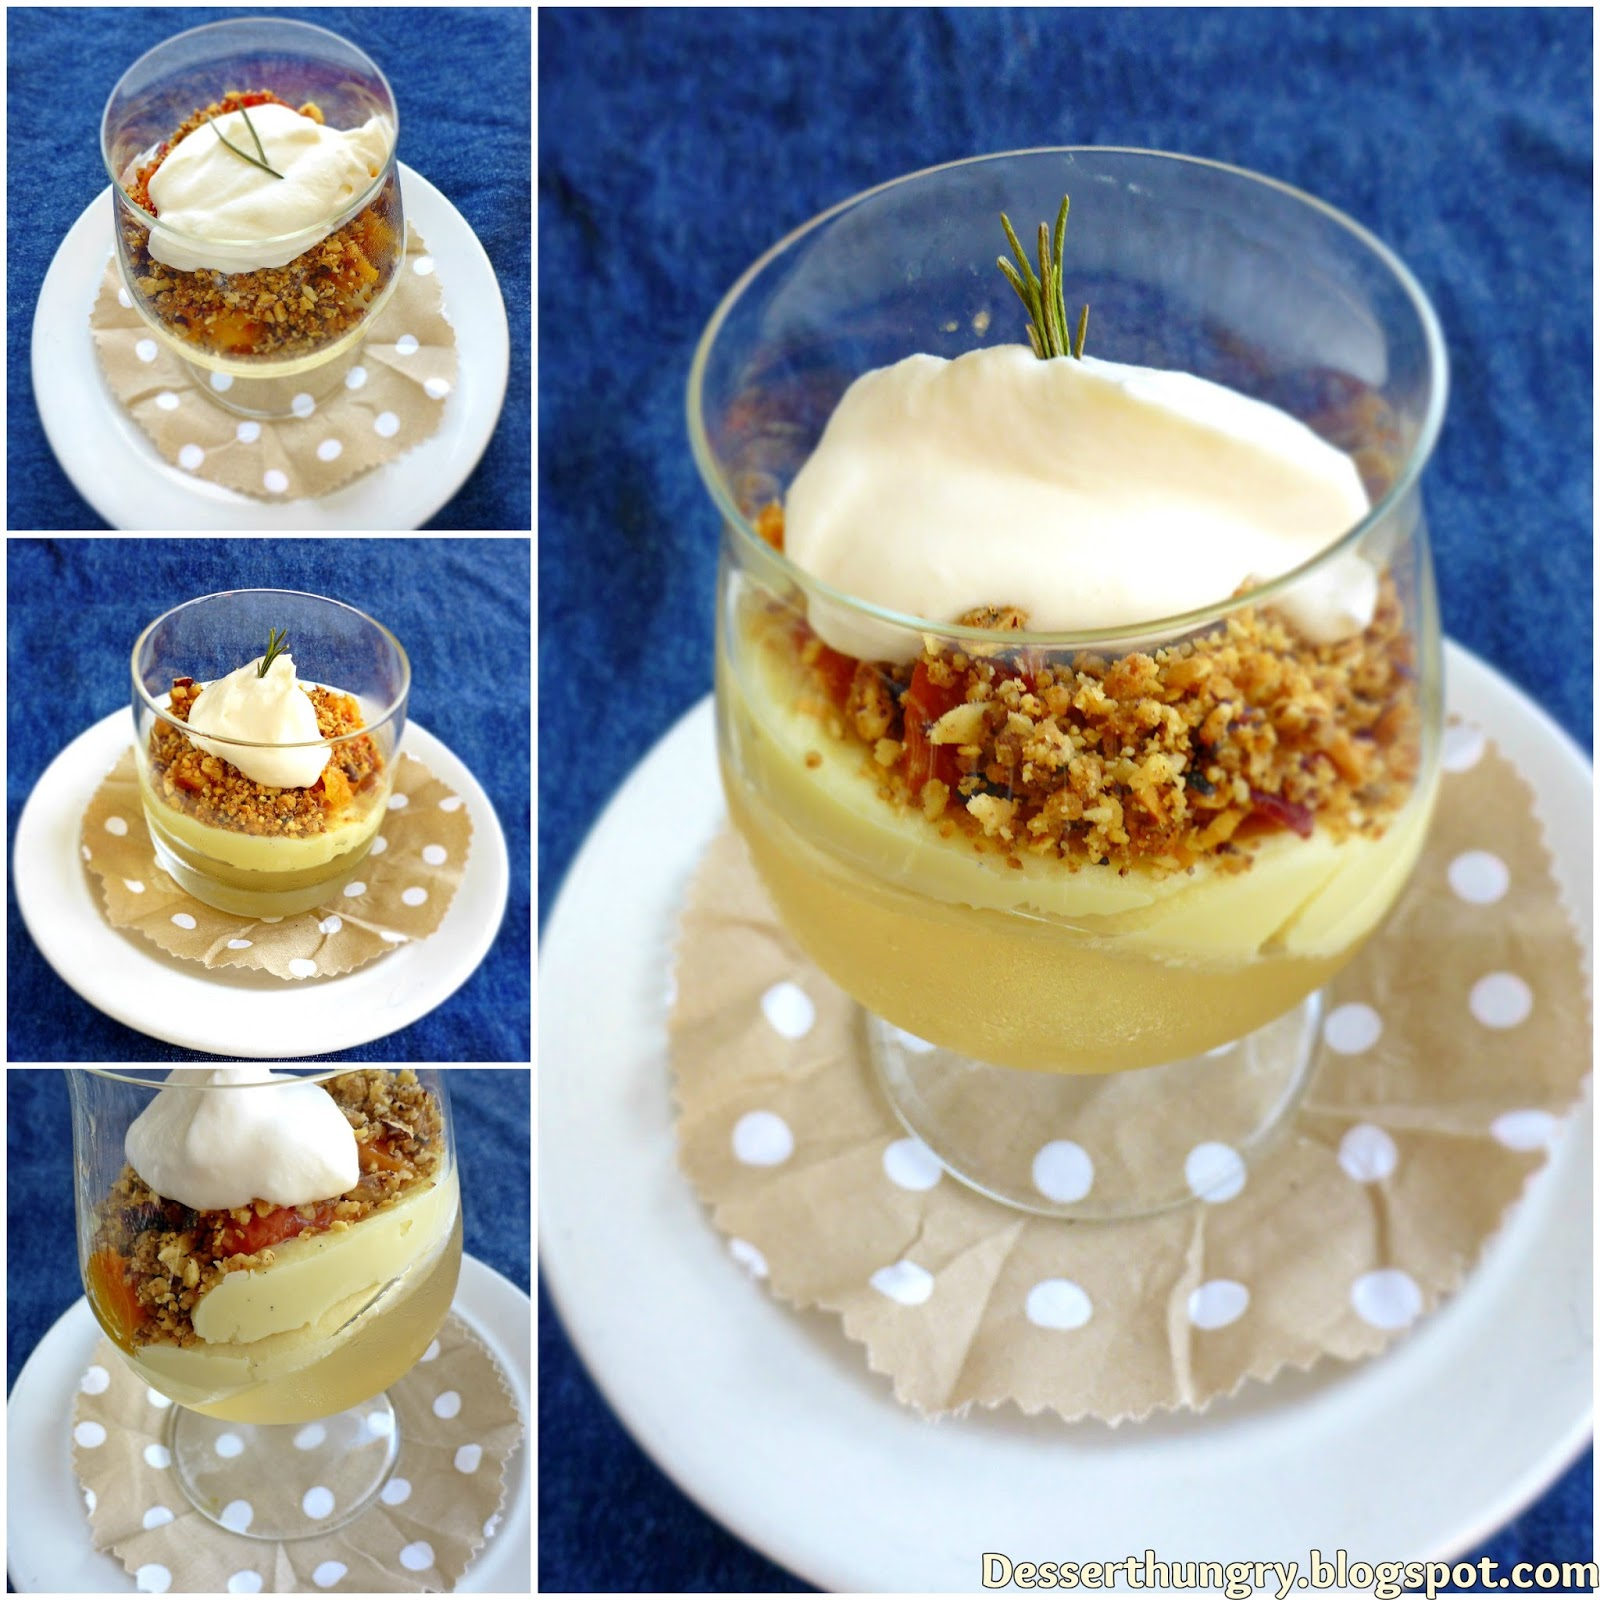 Prosecco and peach verrine by dessert hungry epicurious for Prosecco dessert recipes